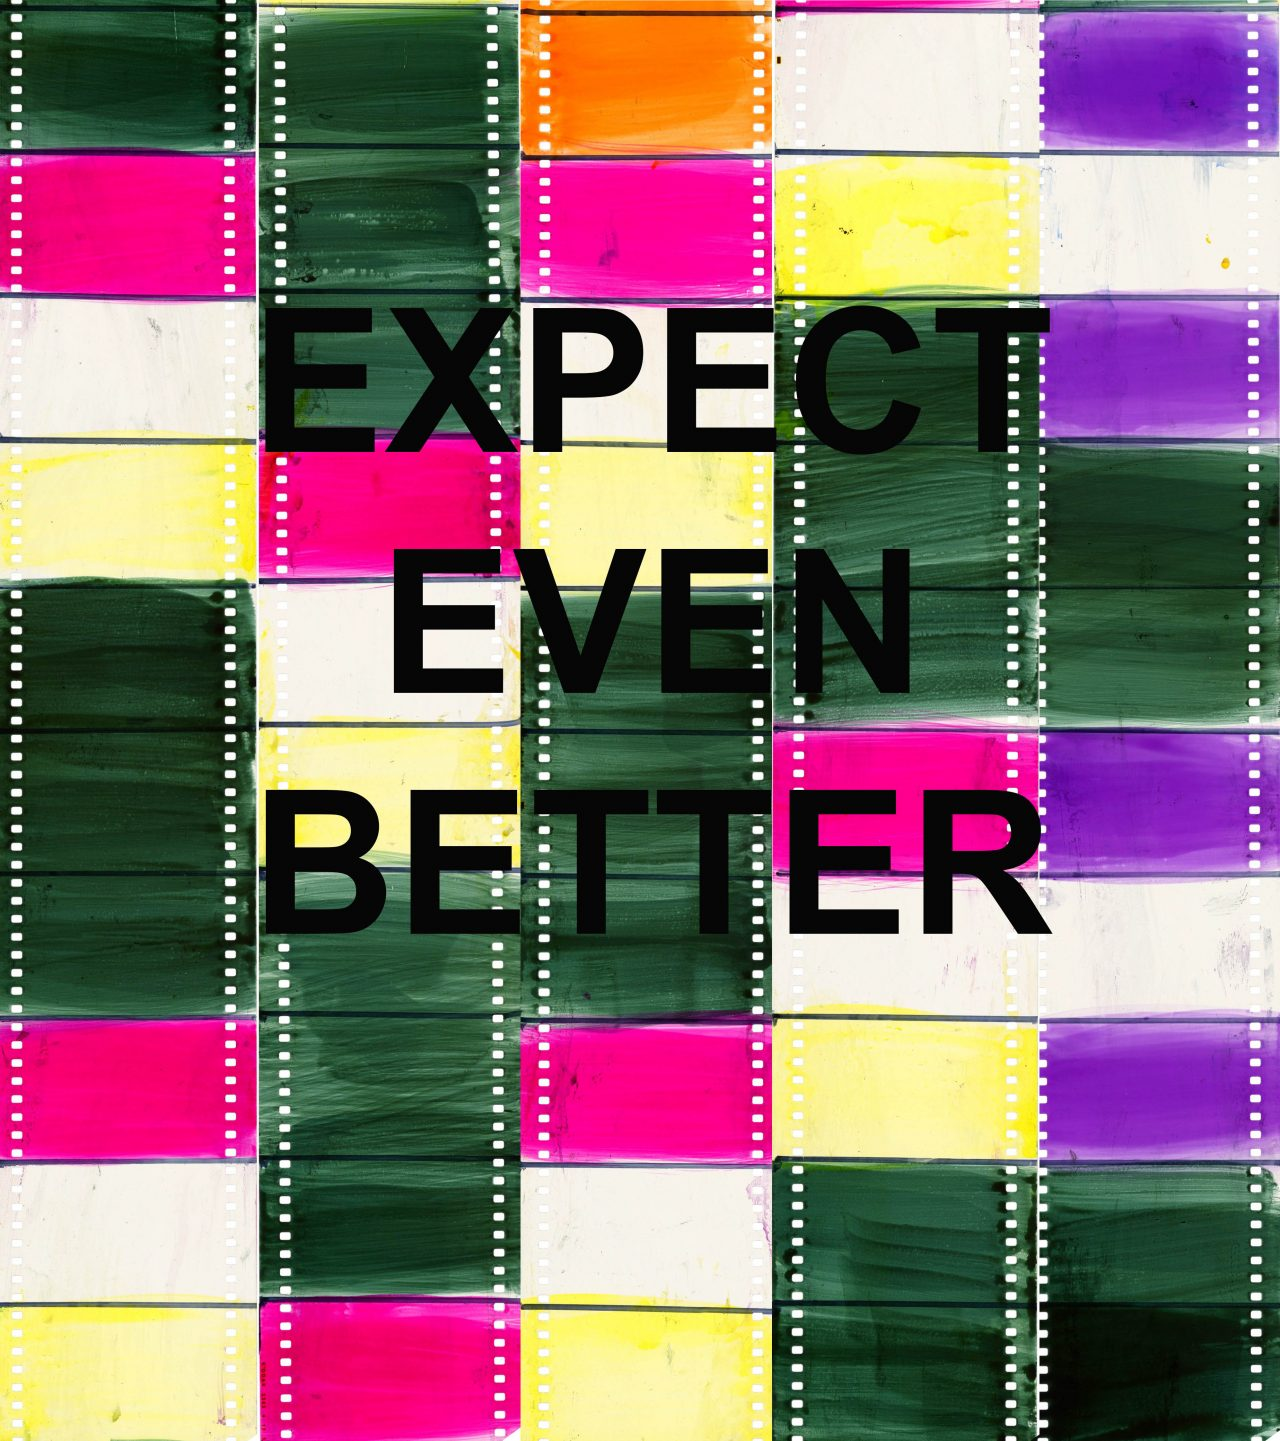 Text lain over distorted film reading 'Expect Even Better' and 'Disruption.'